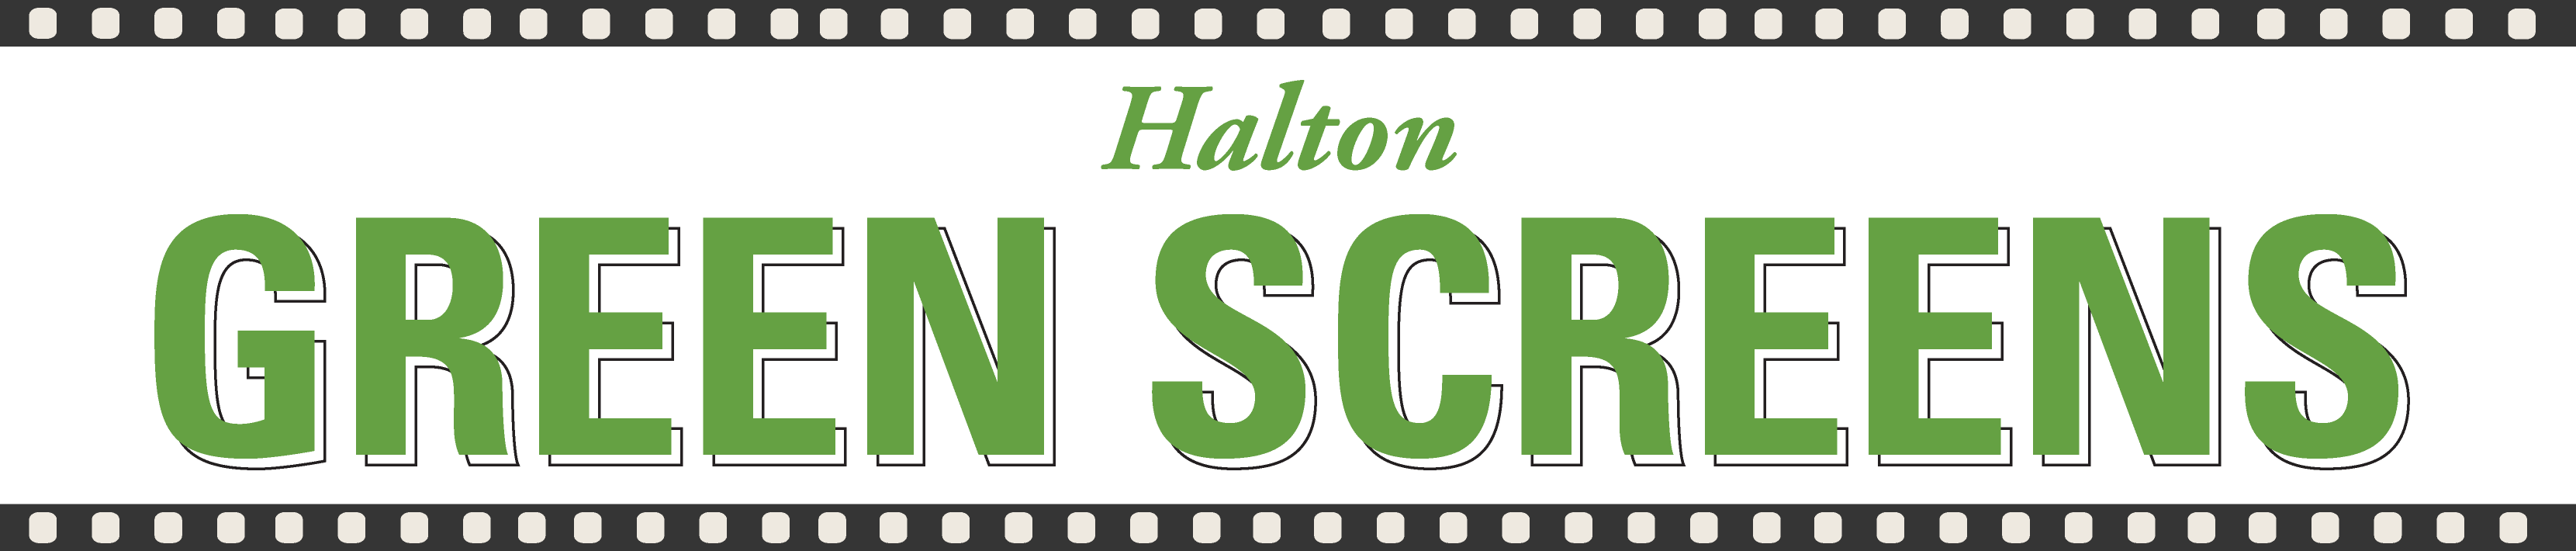 Halton Green Screens